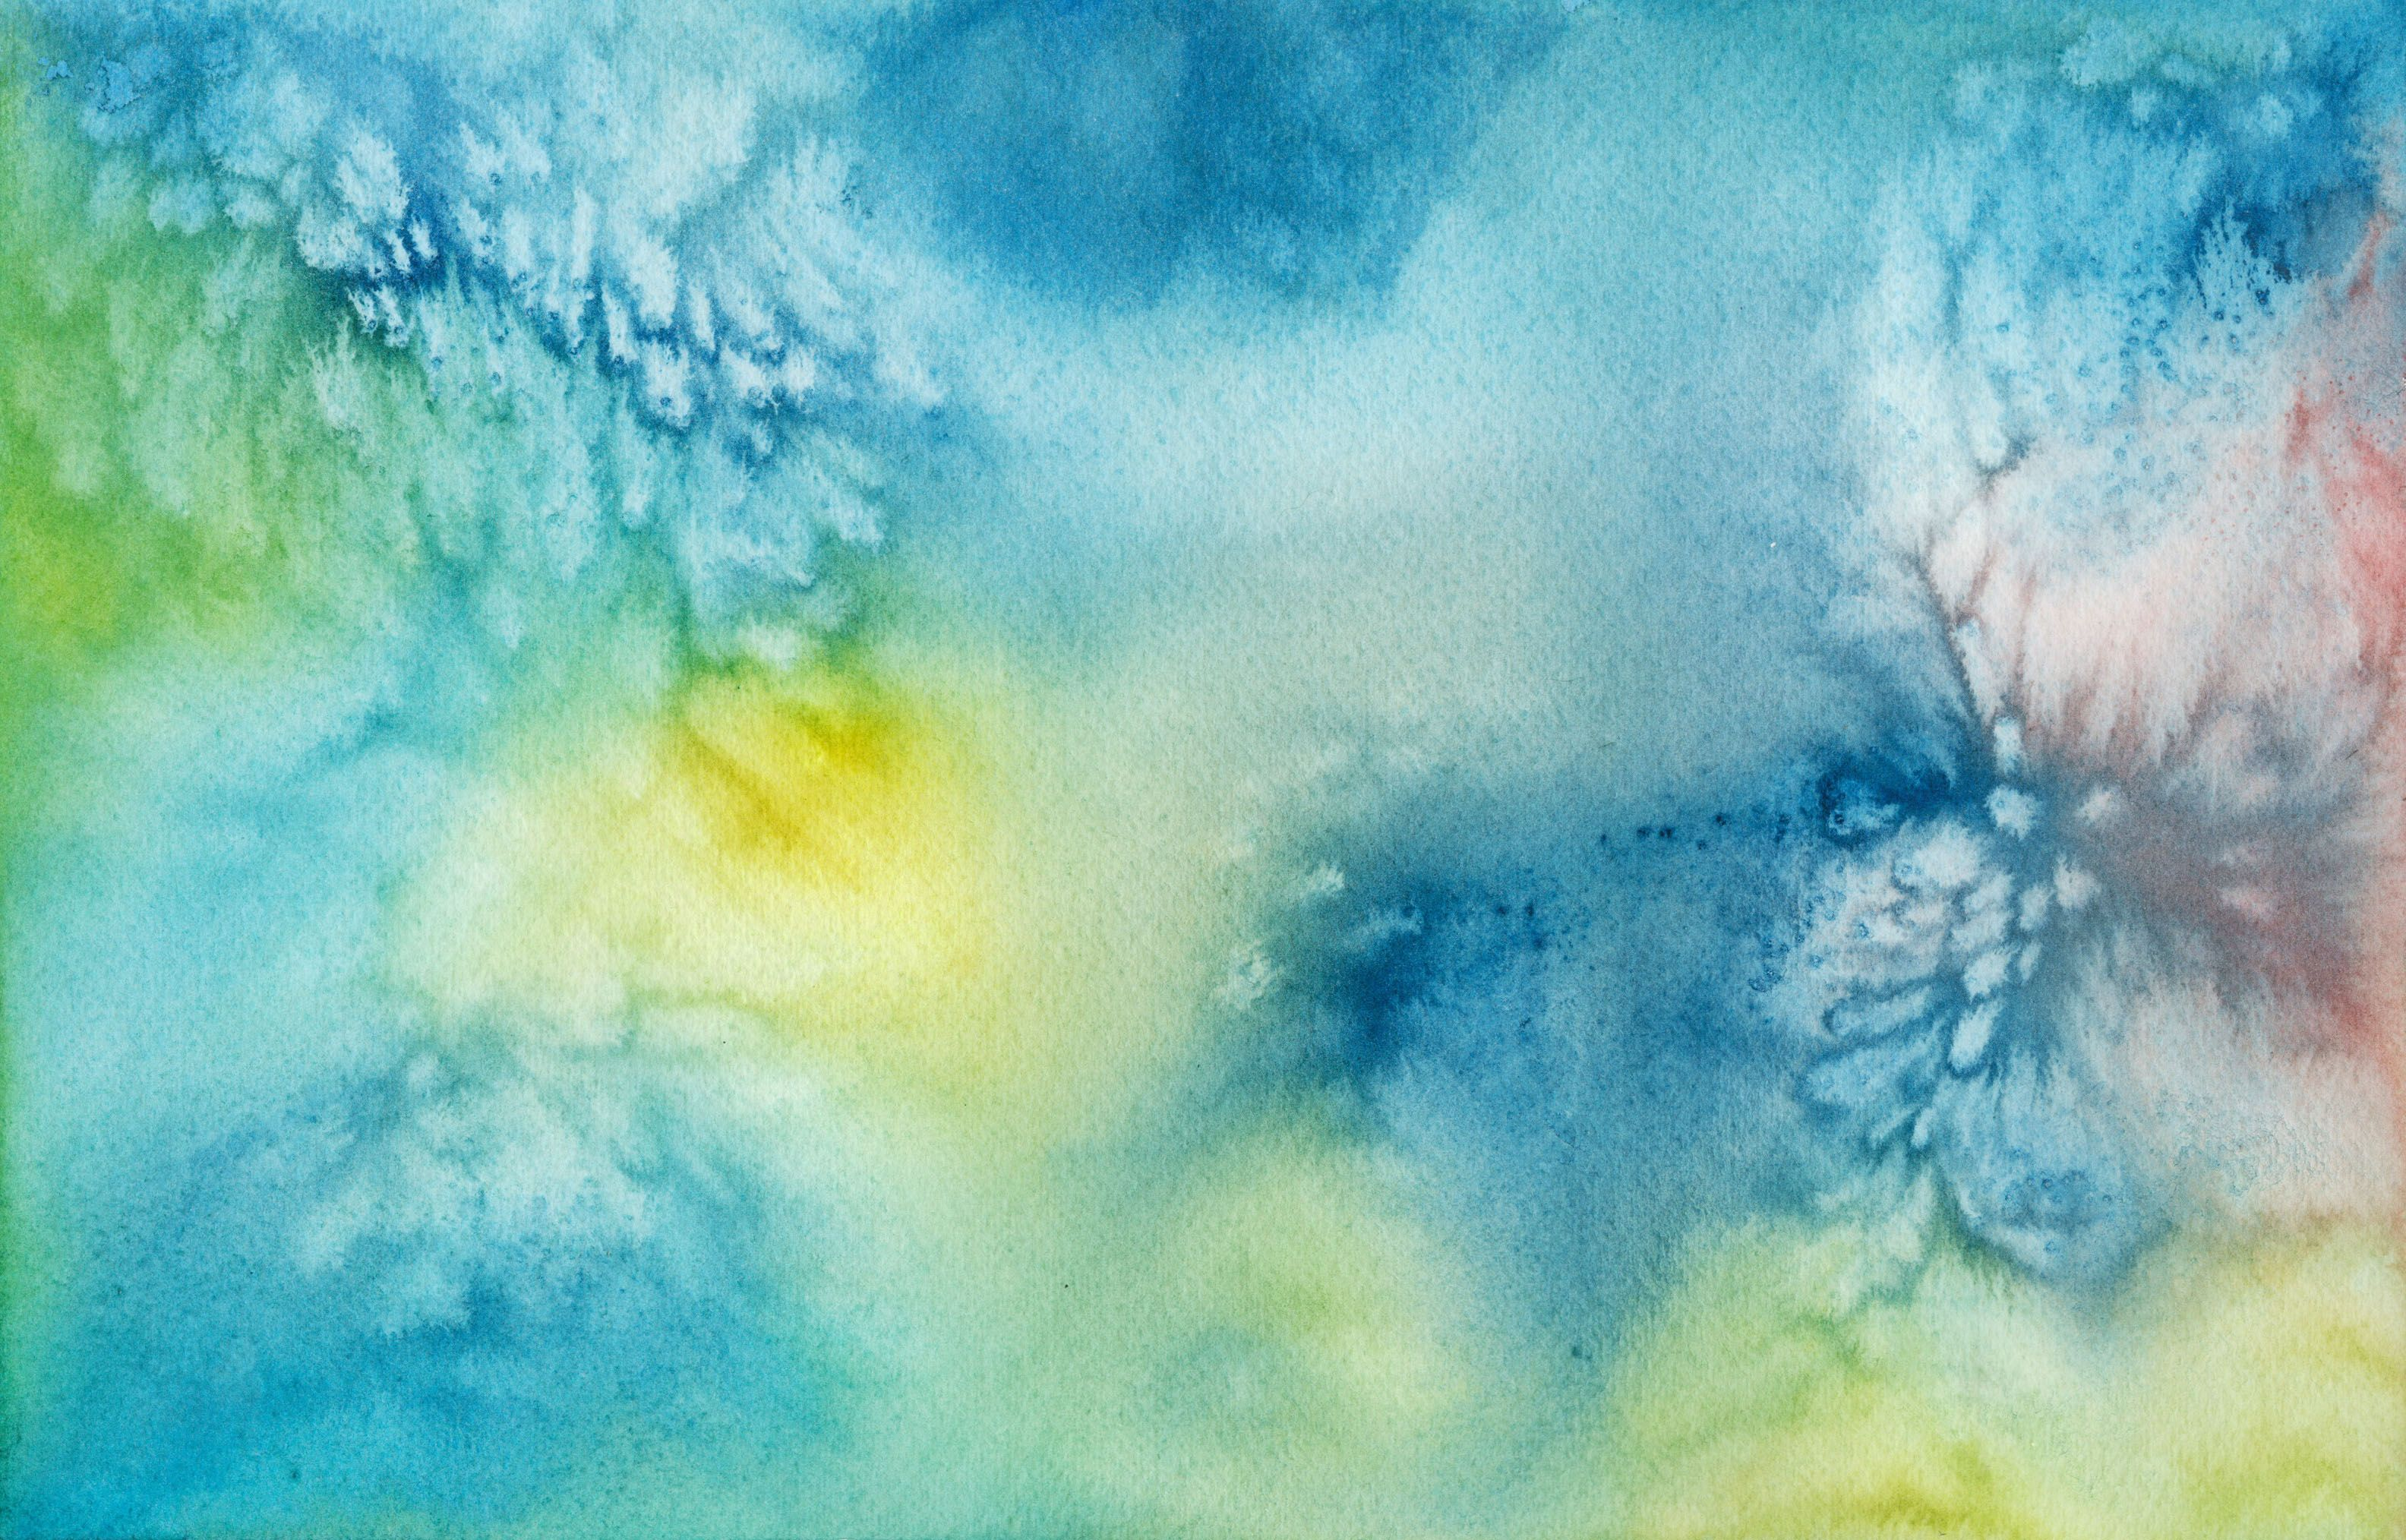 15 best ideas about watercolor on Pinterest | Watercolor texture ...